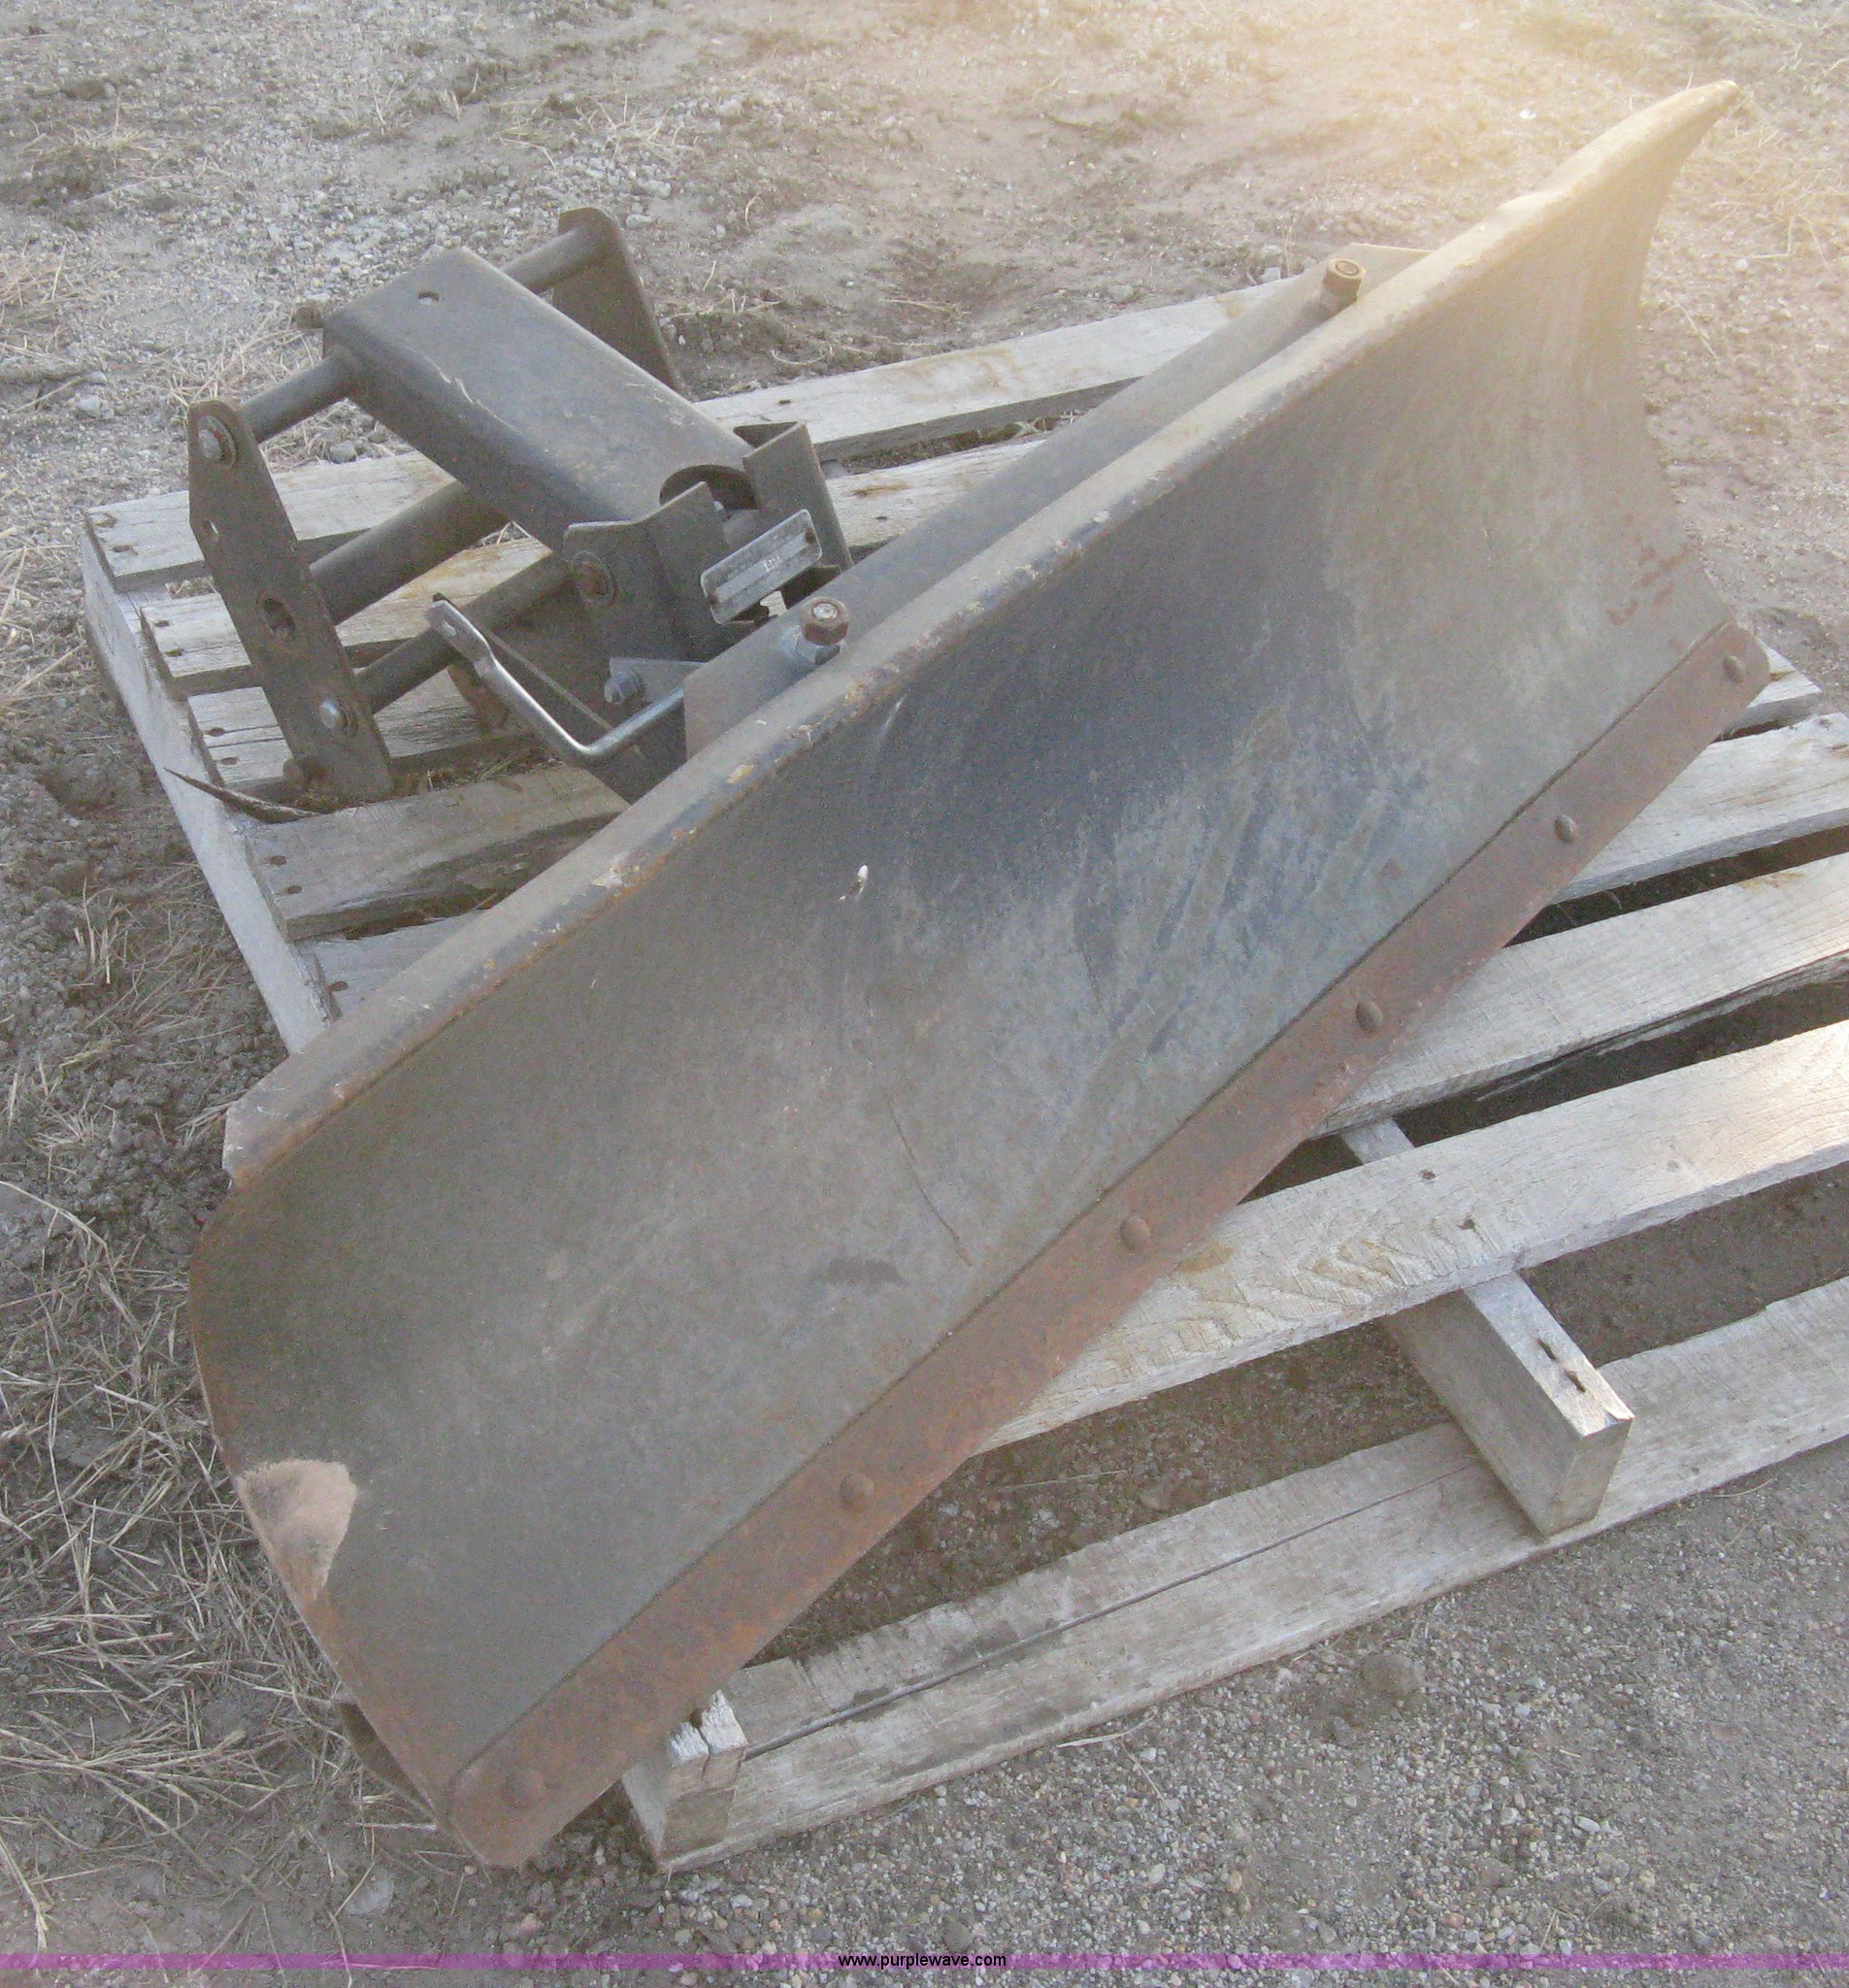 lawn tractor and garden tractor attachments have you covered no matter the task at hand. Sears Lawn Tractor Snow Plow Attachment In Wichita Ks Item B8381 Sold Purple Wave